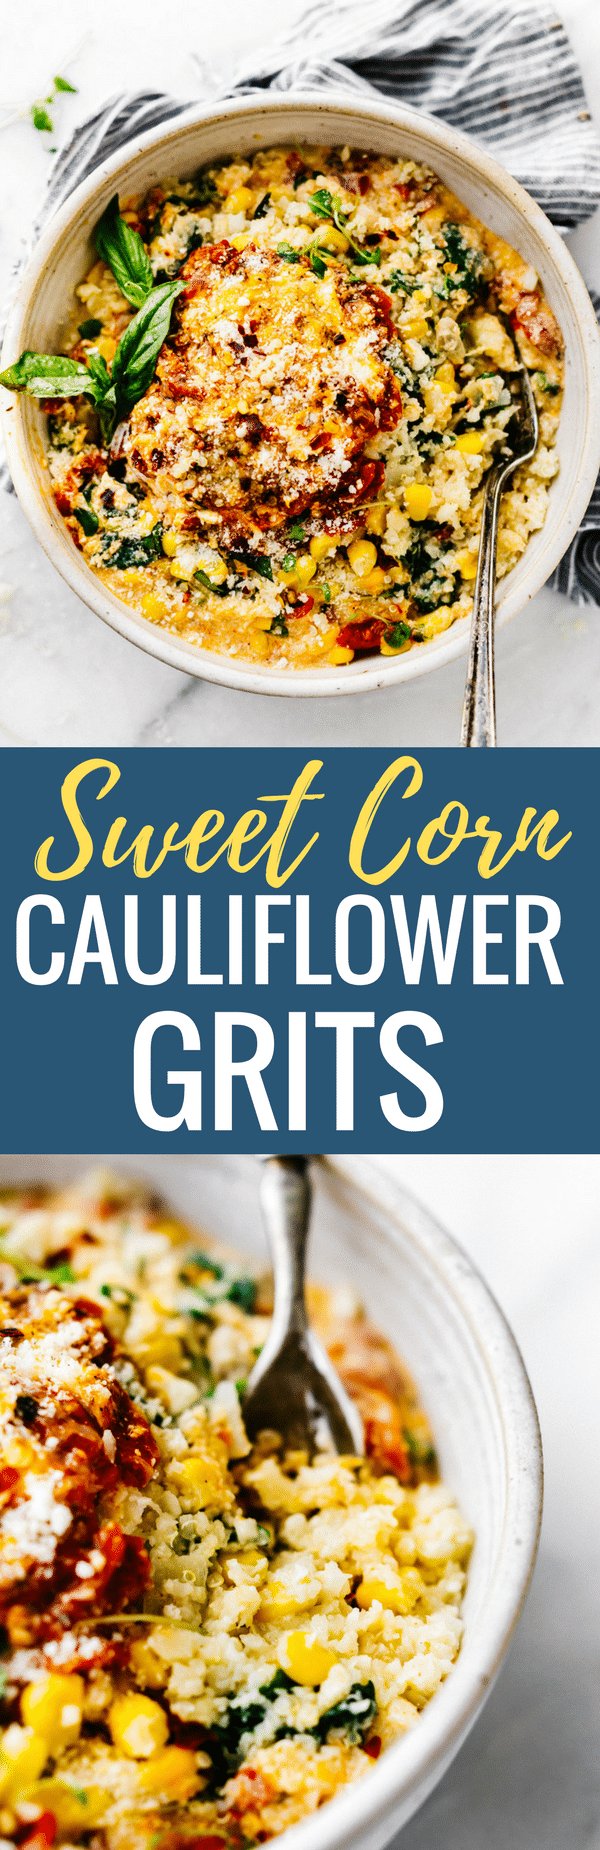 "This Creamy Sweet Corn Cauliflower Grits recipe makes for a flavor packed one pot meal! Vegetarian Comfort food made lighter and healthier! Cauliflower riced into ""grits"" with sweet corn, Gruyere cheese, spinach, basil, onion, and more! Ready in 30 minutes www.cottercrunch.com"